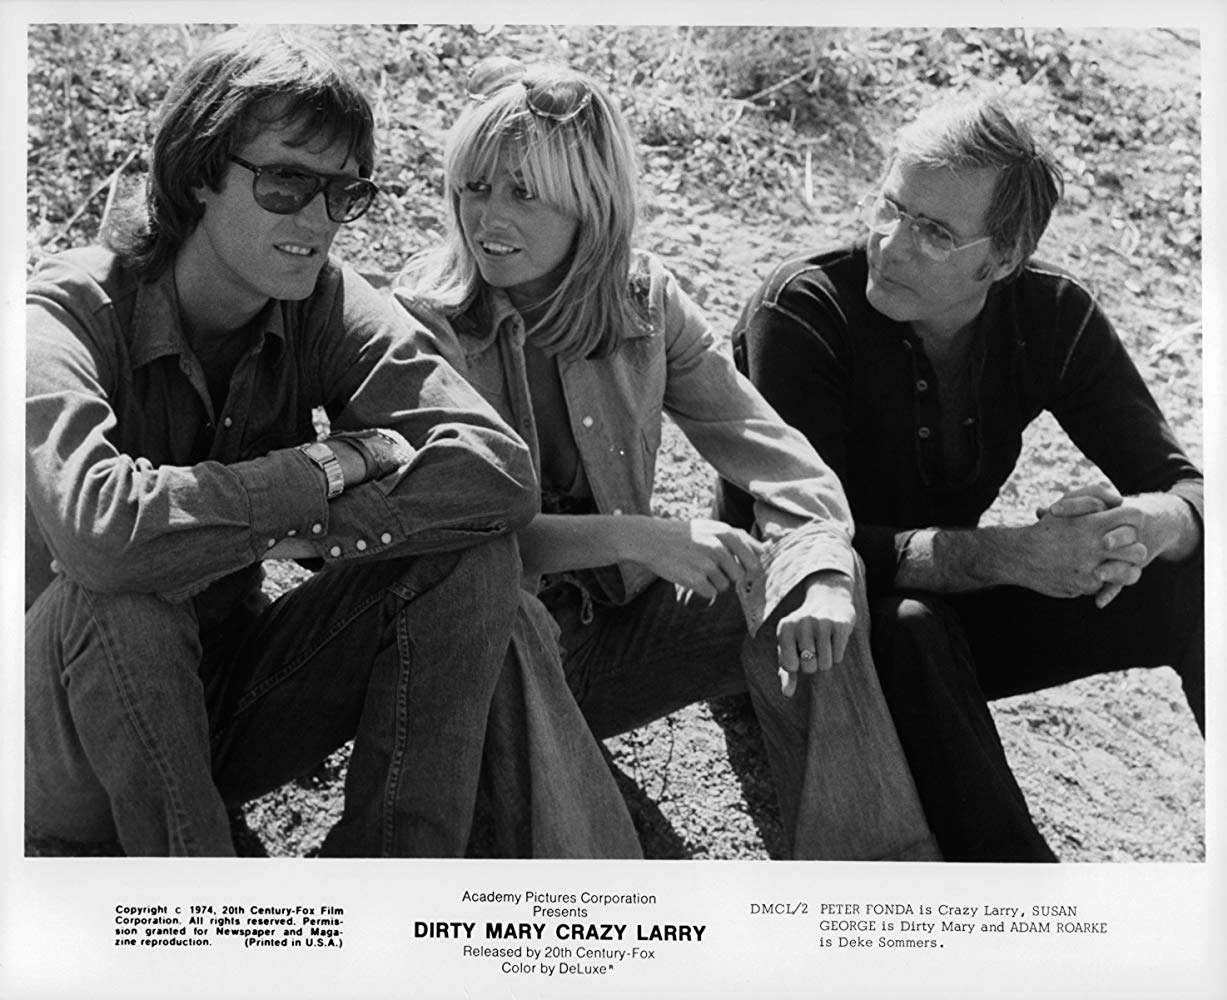 'Dirty Mary Crazy Larry' (1974)